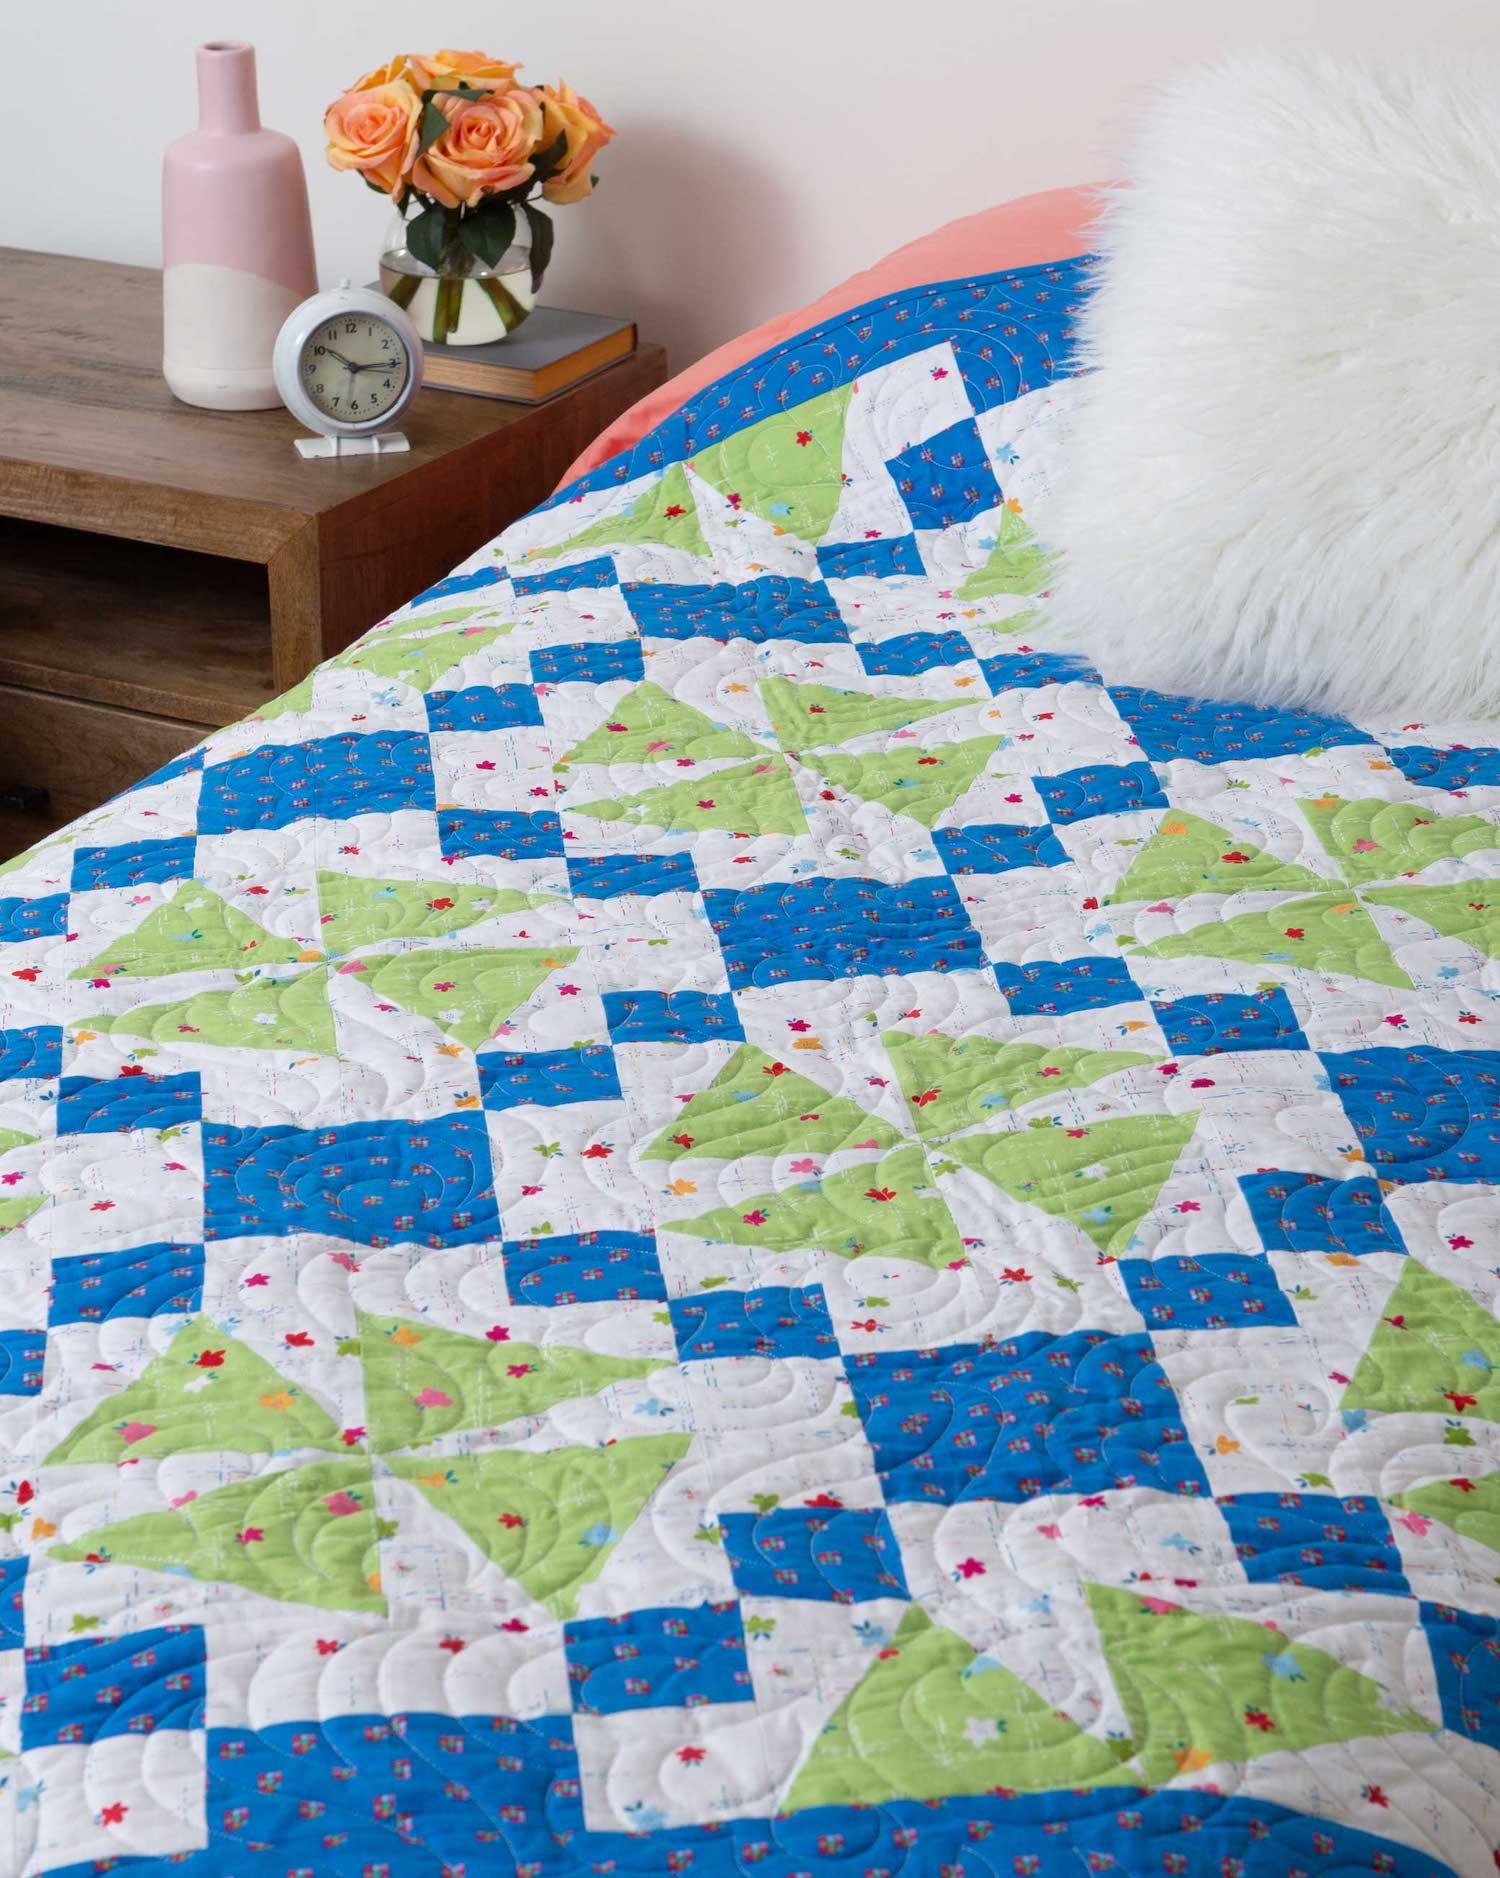 PQ11567-10in-upbeat-angles-throw-quilt-lifestyle-WEB